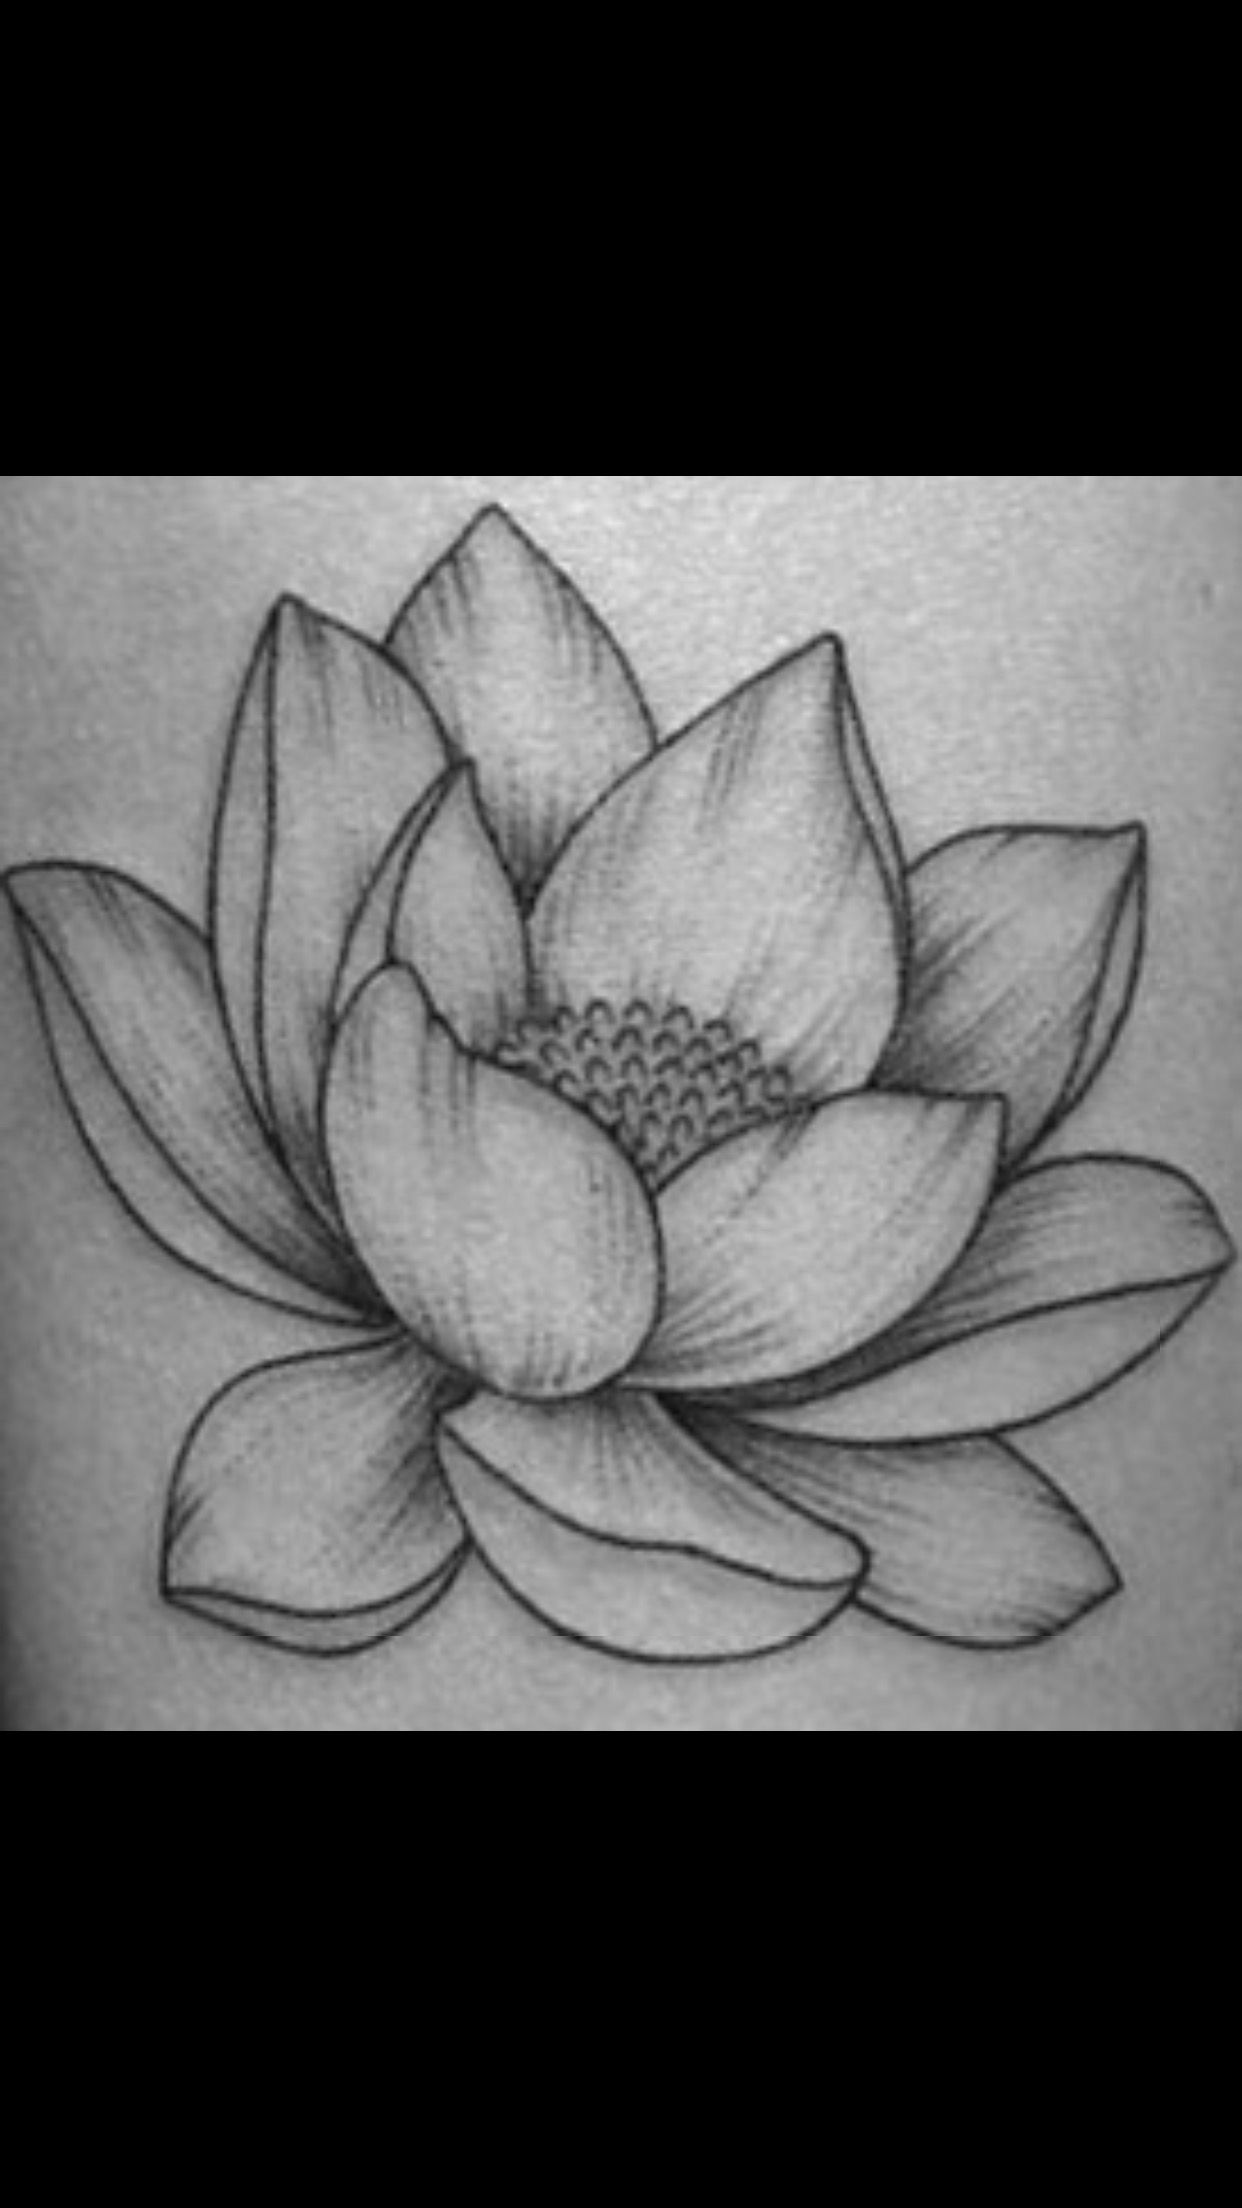 Lotus flower drawing tattoos pinterest lotus flower lotus and lotus flower drawing mightylinksfo